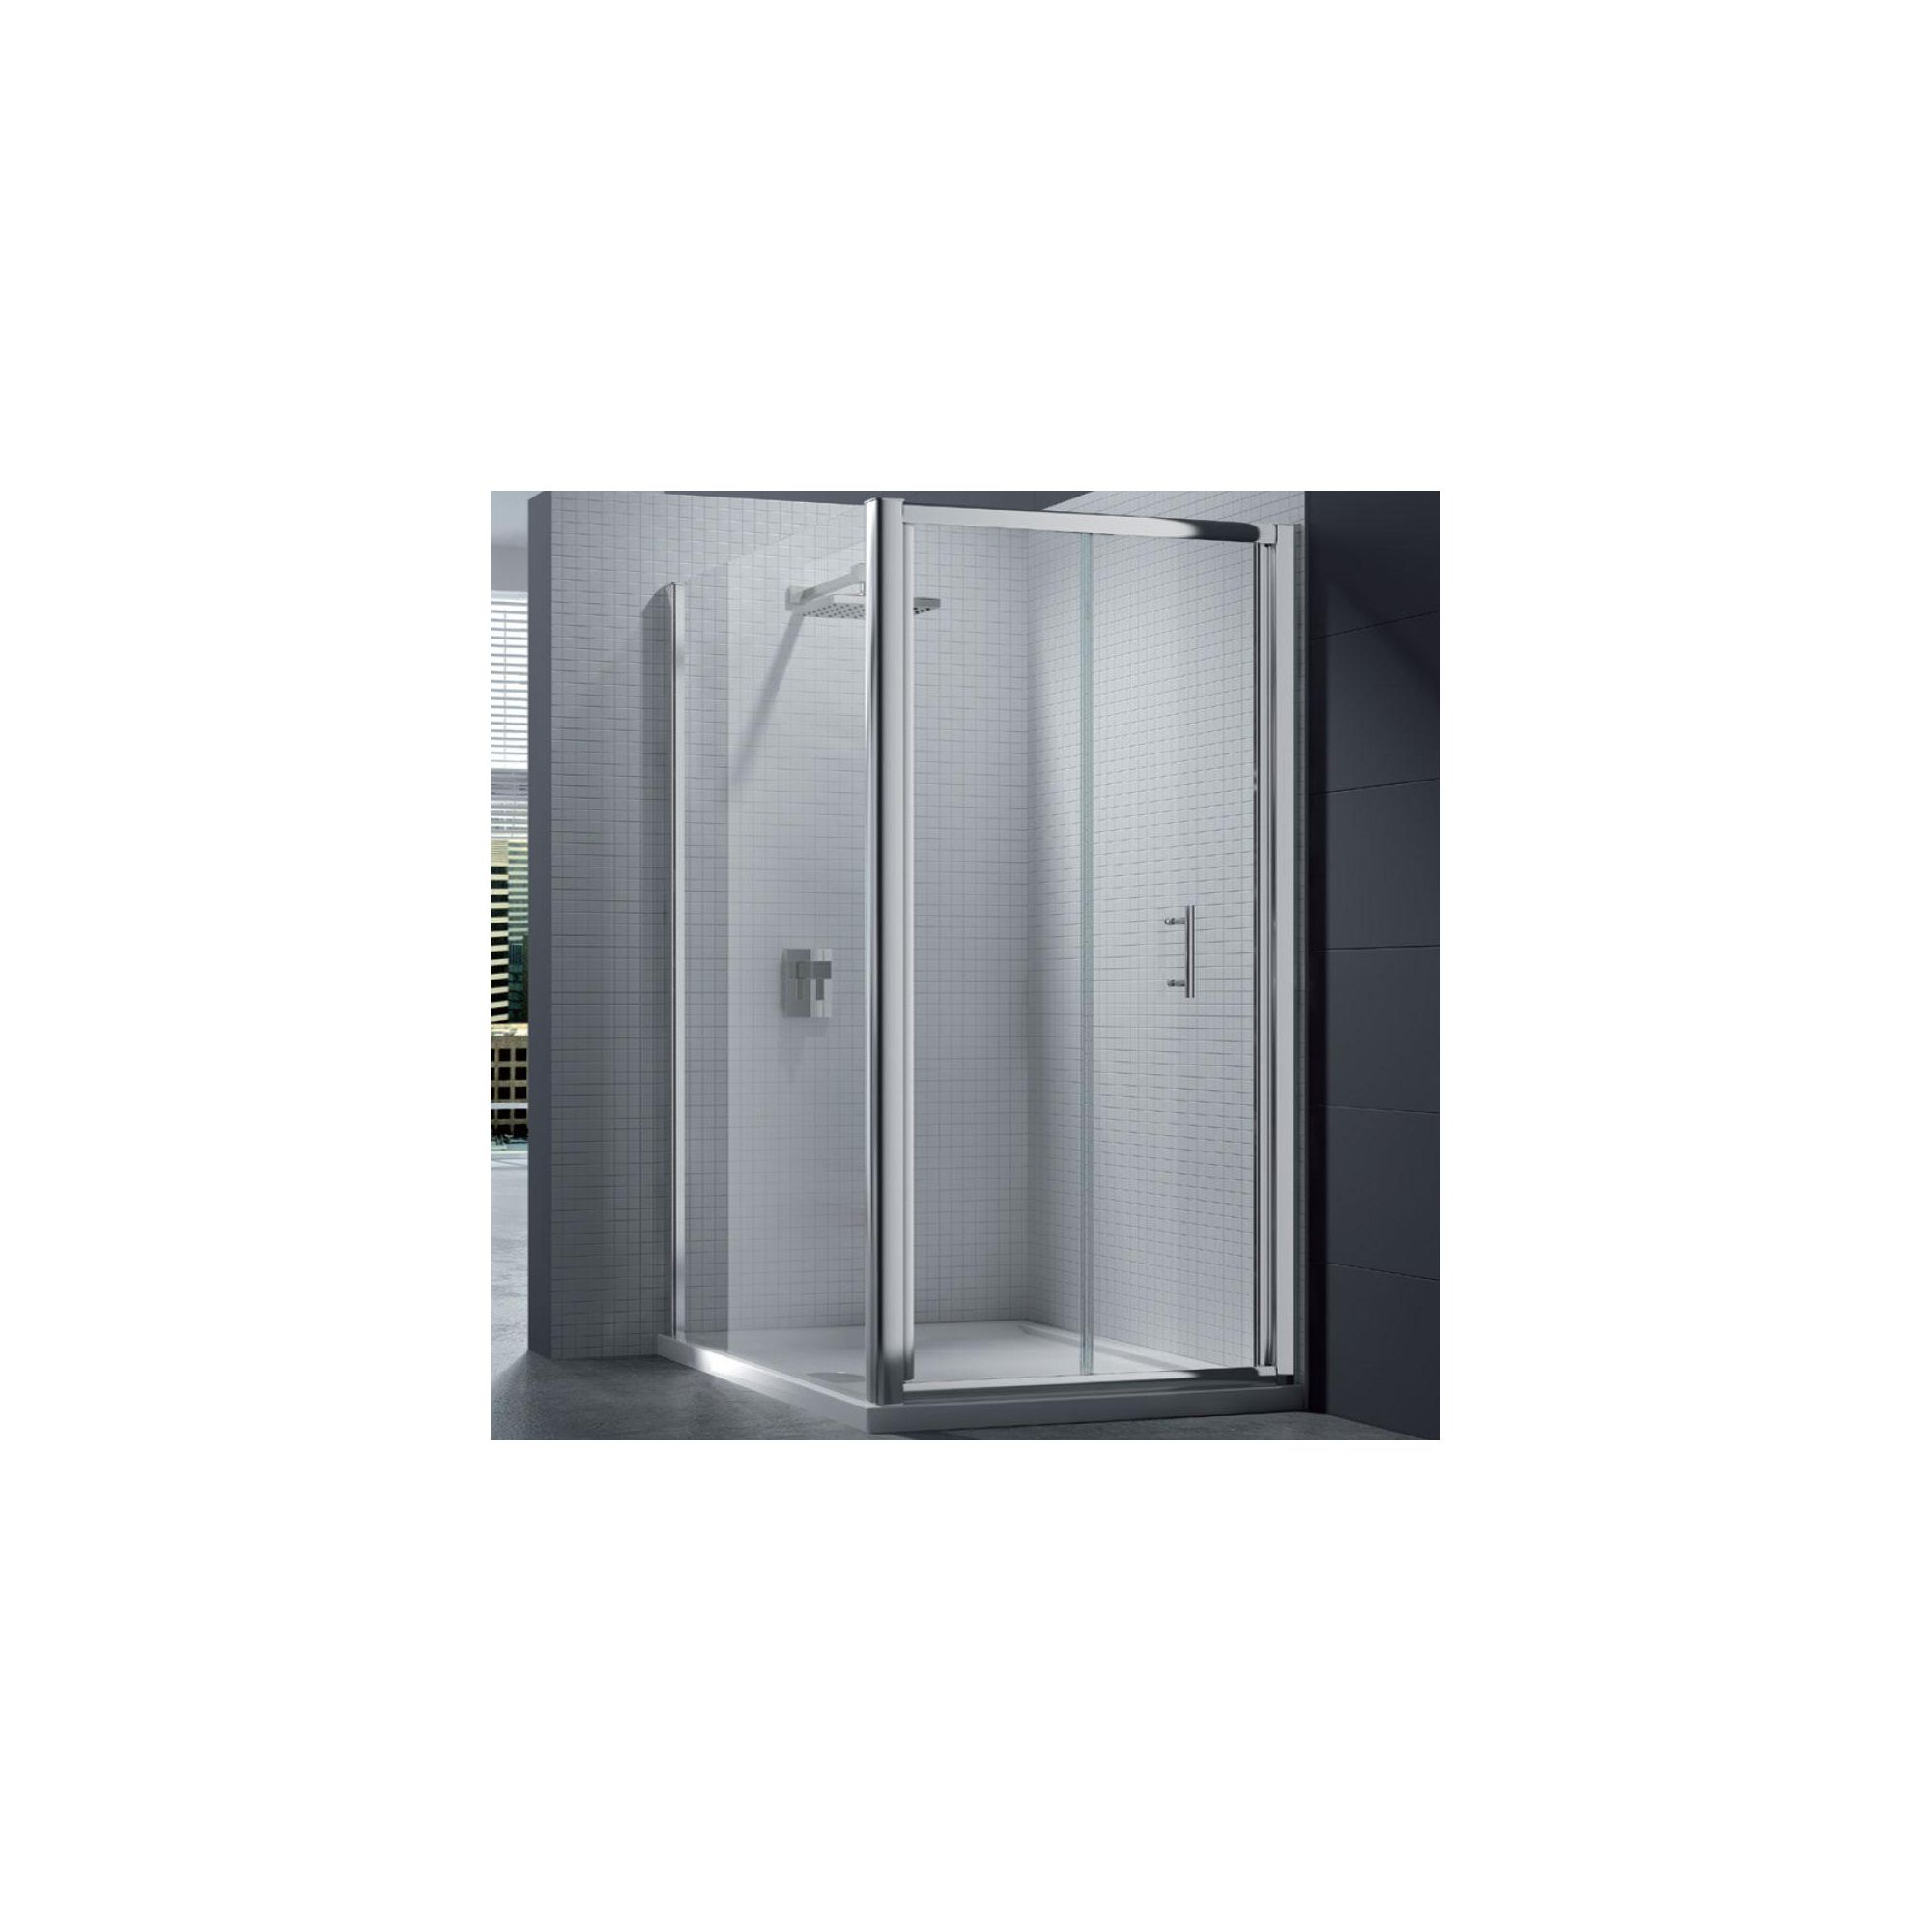 Merlyn Series 6 Bi-Fold Shower Door, 900mm Wide, Chrome Frame, 6mm Glass at Tesco Direct